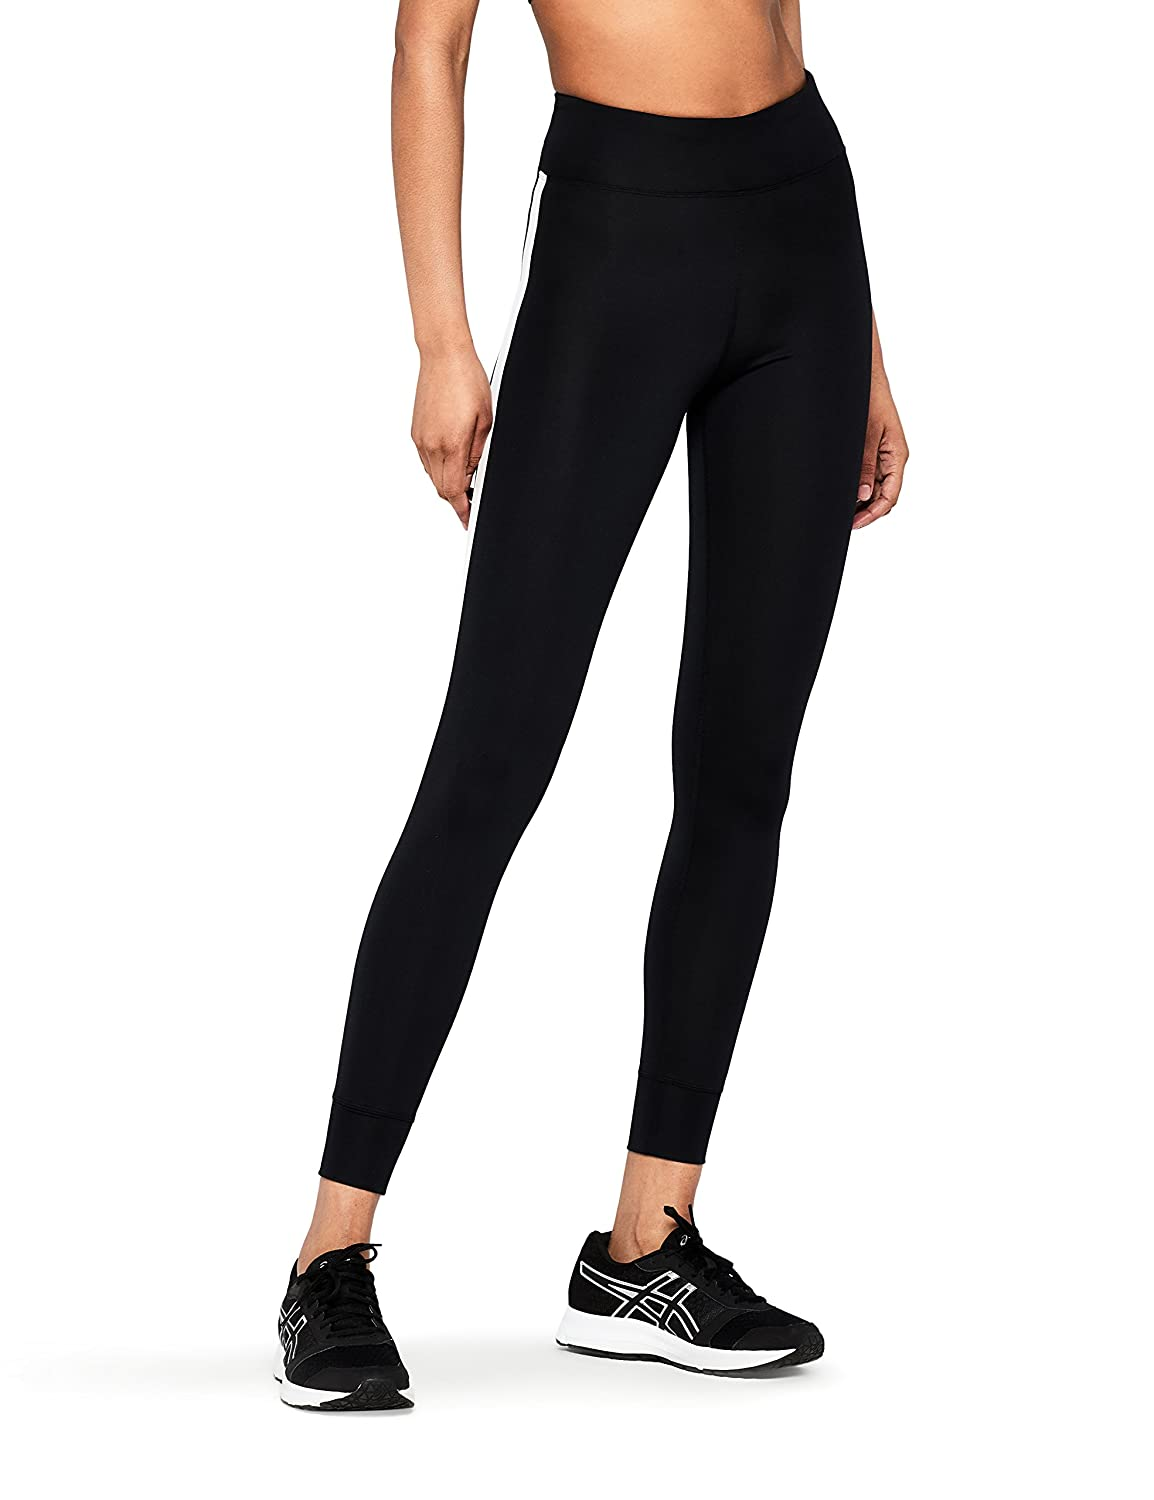 AURIQUE Damen Sportleggings mit Seitenstreifen BAL1006